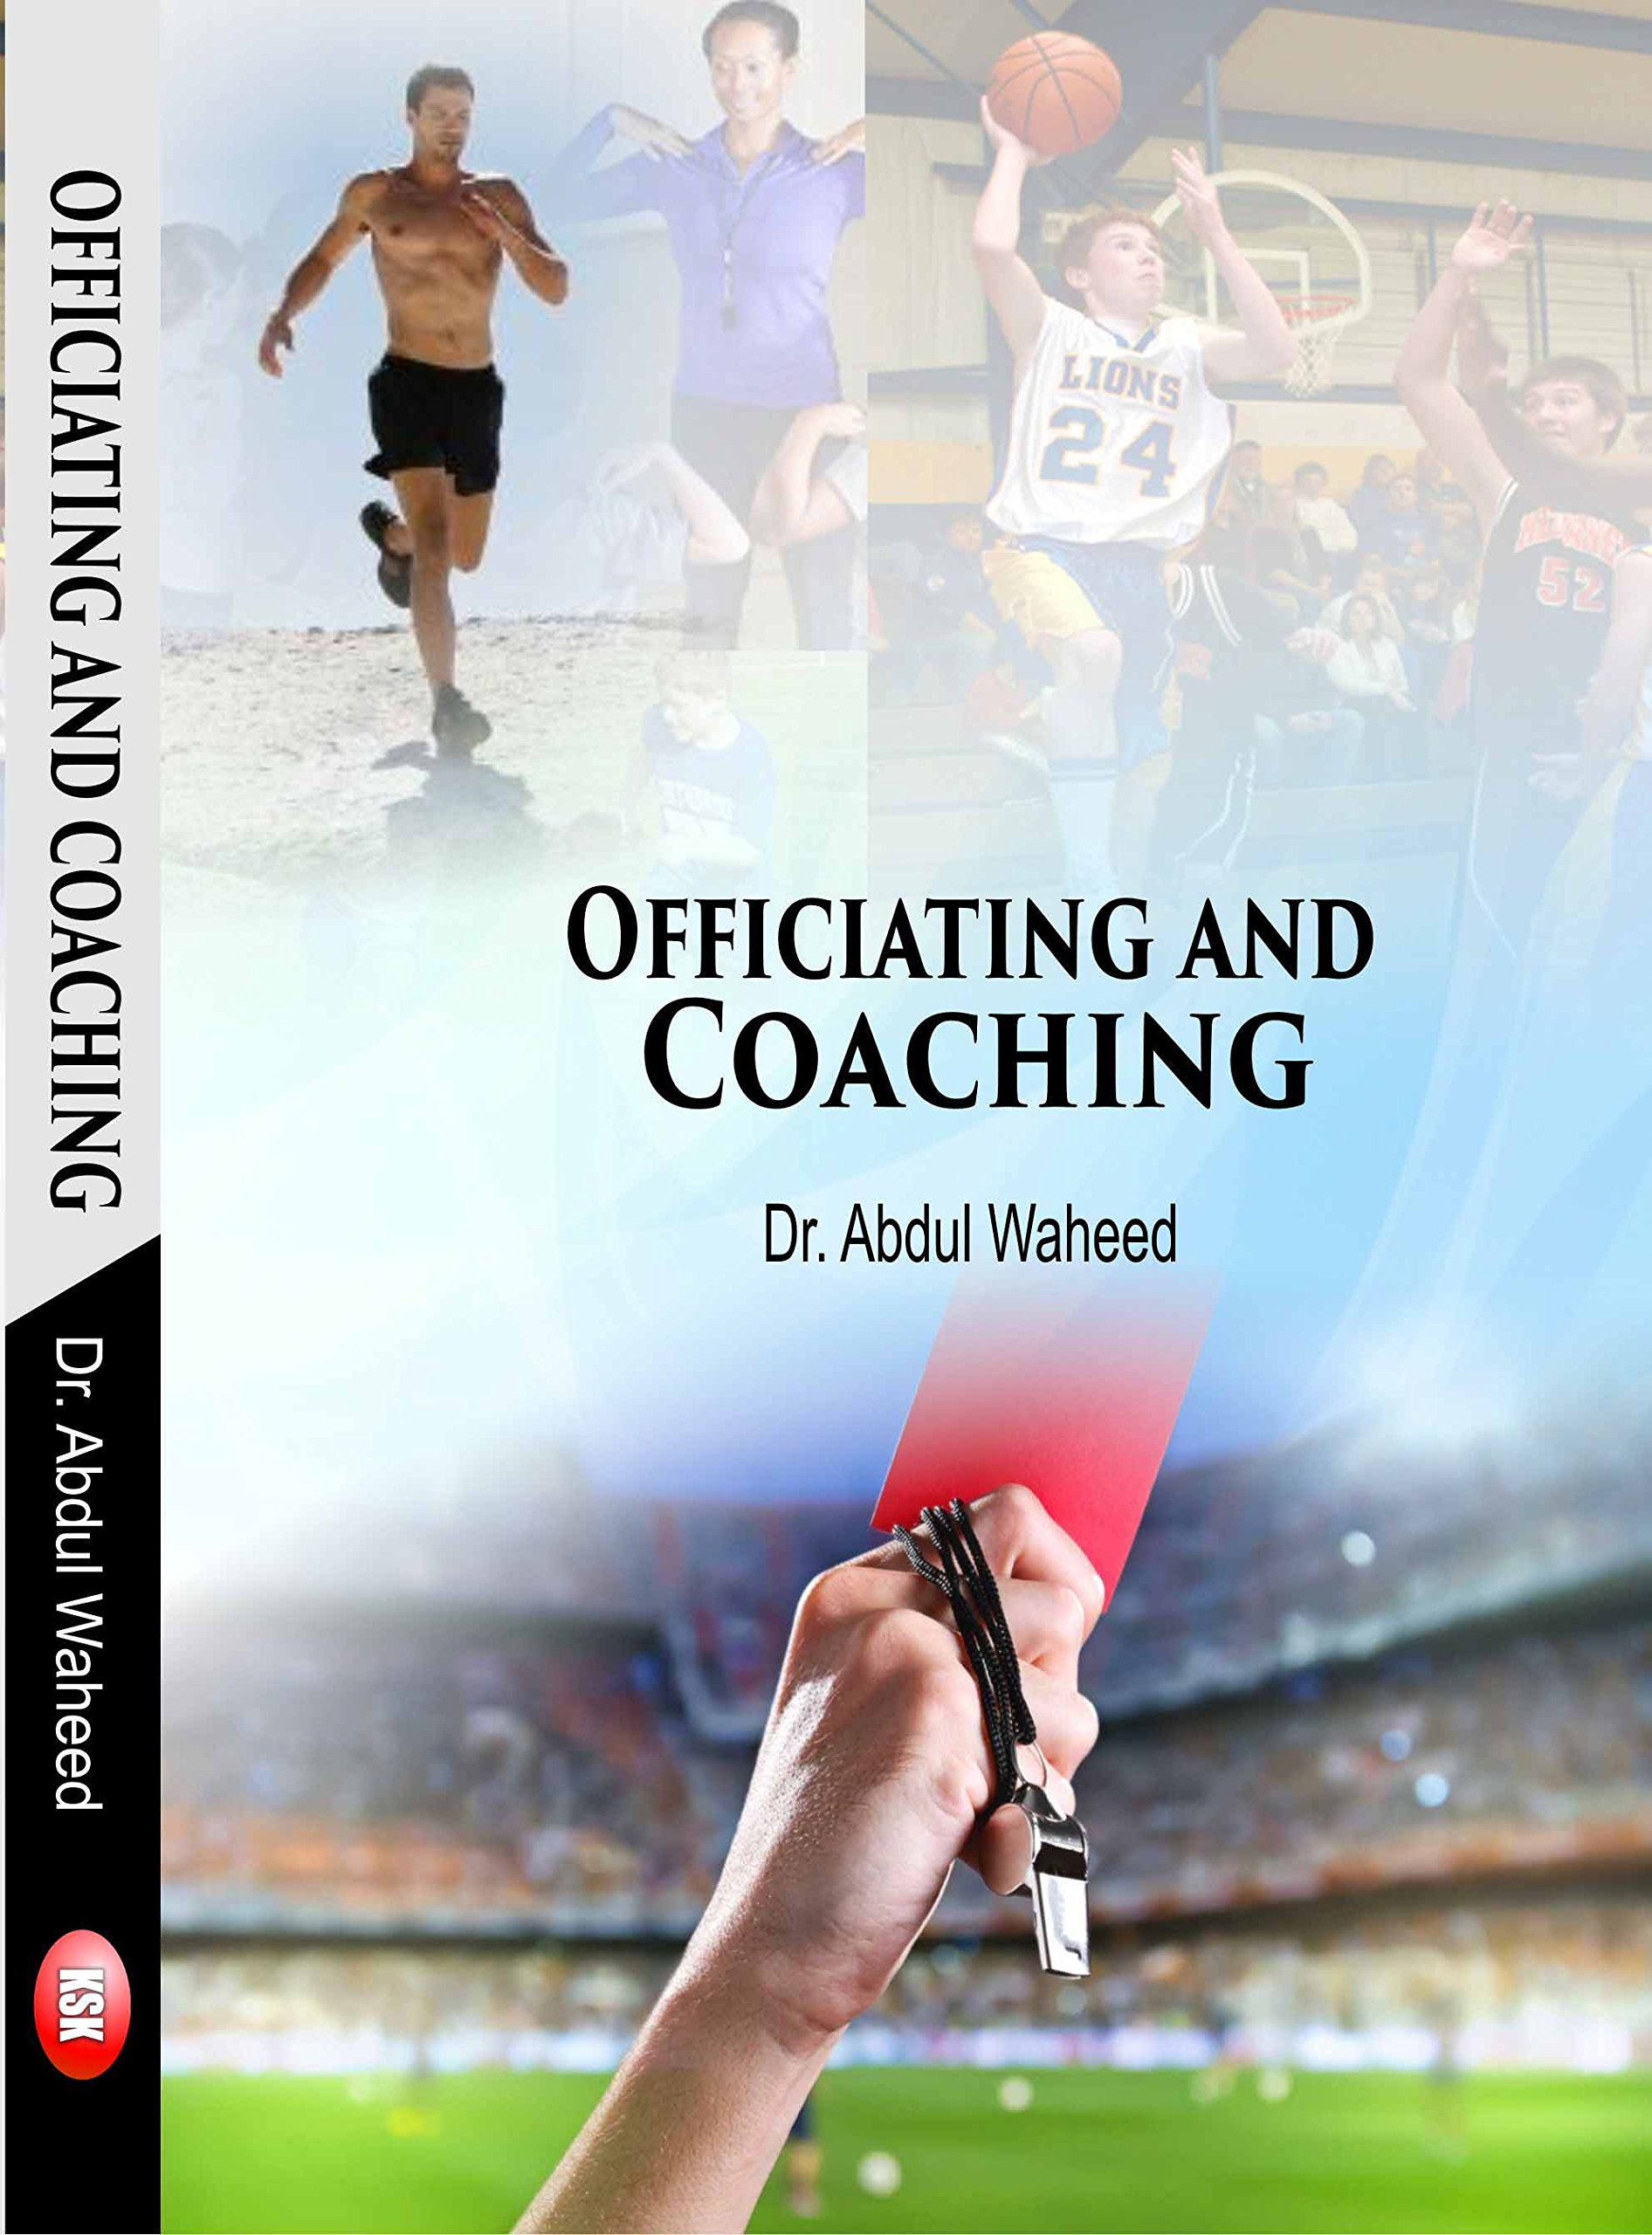 OFFICATING AND COACHING